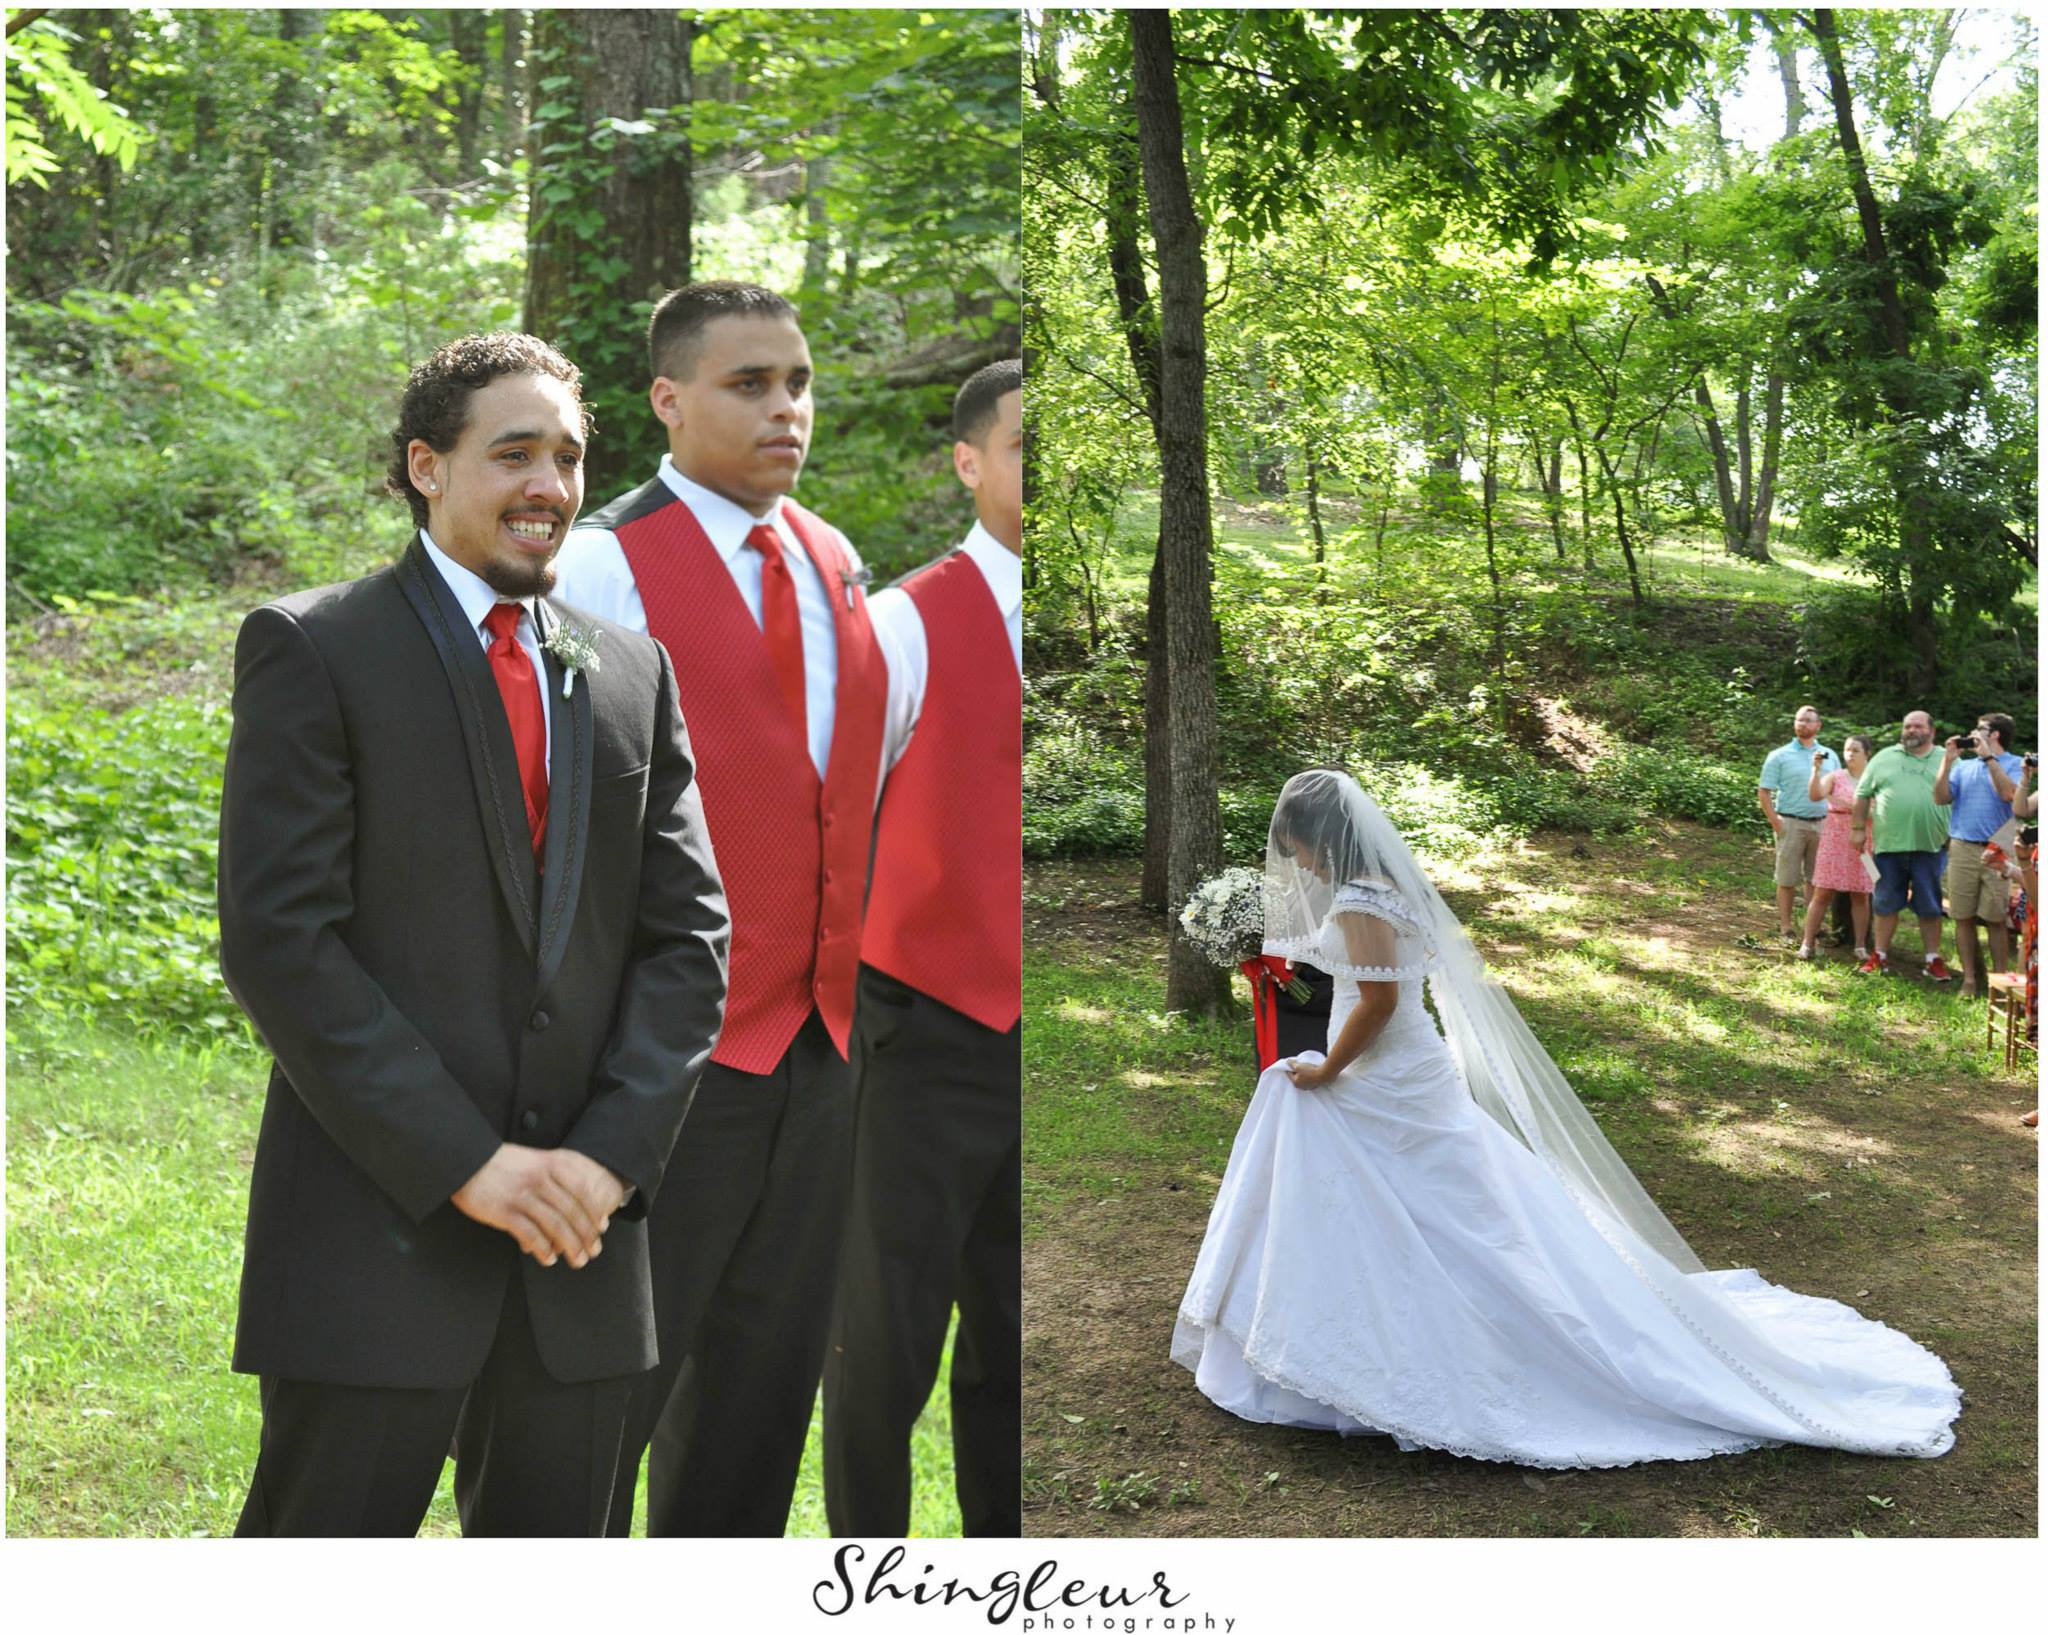 Shingleur Photography . That's a happy groom, y'all! So sweet.